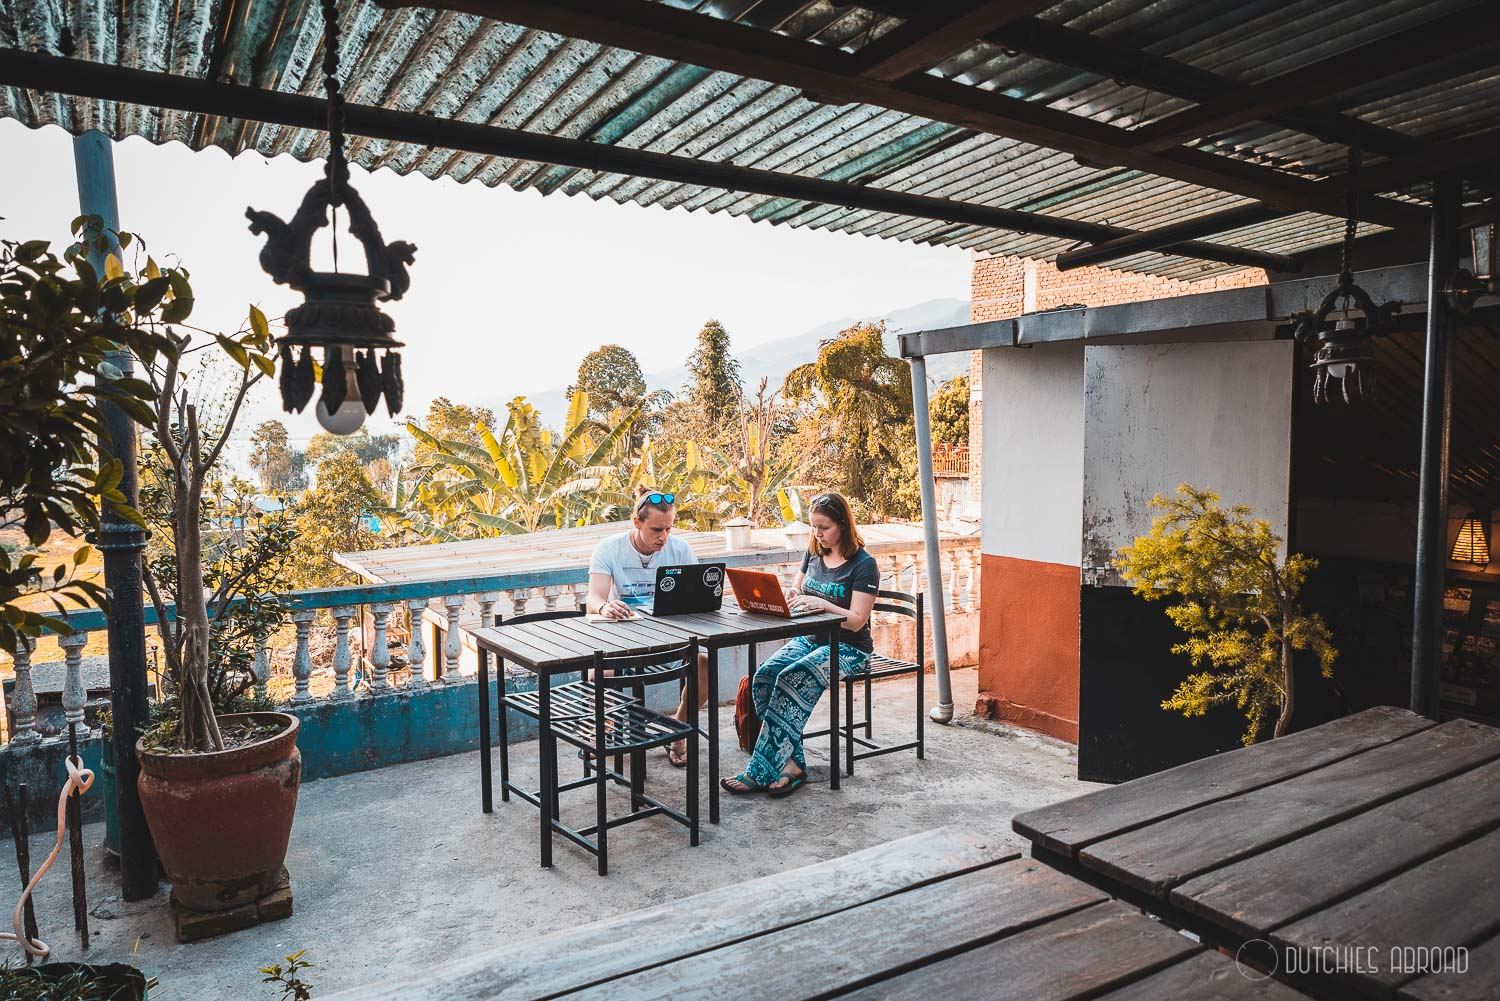 Working as a digital nomad in Pokhara